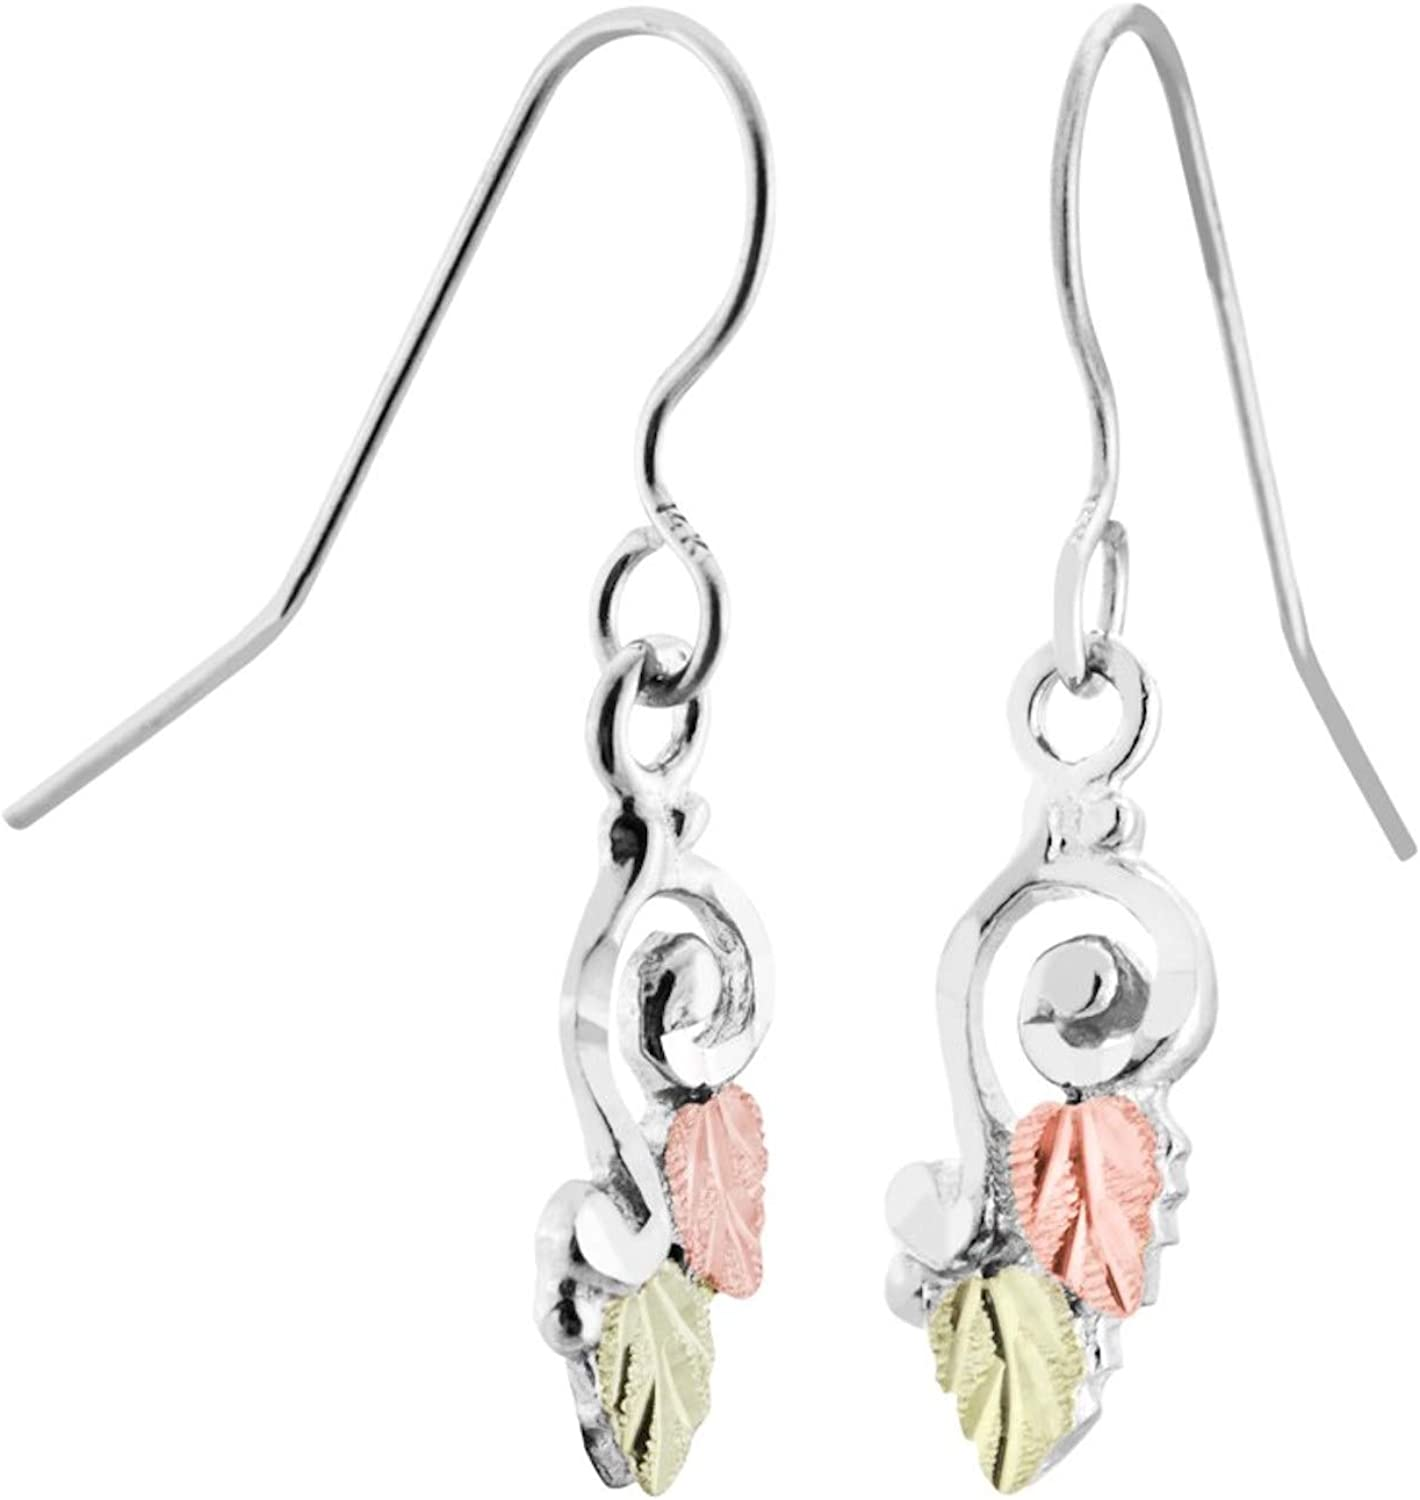 All stores are sold Black Hills Silver MRLER3697 Max 65% OFF Earrings Dangle